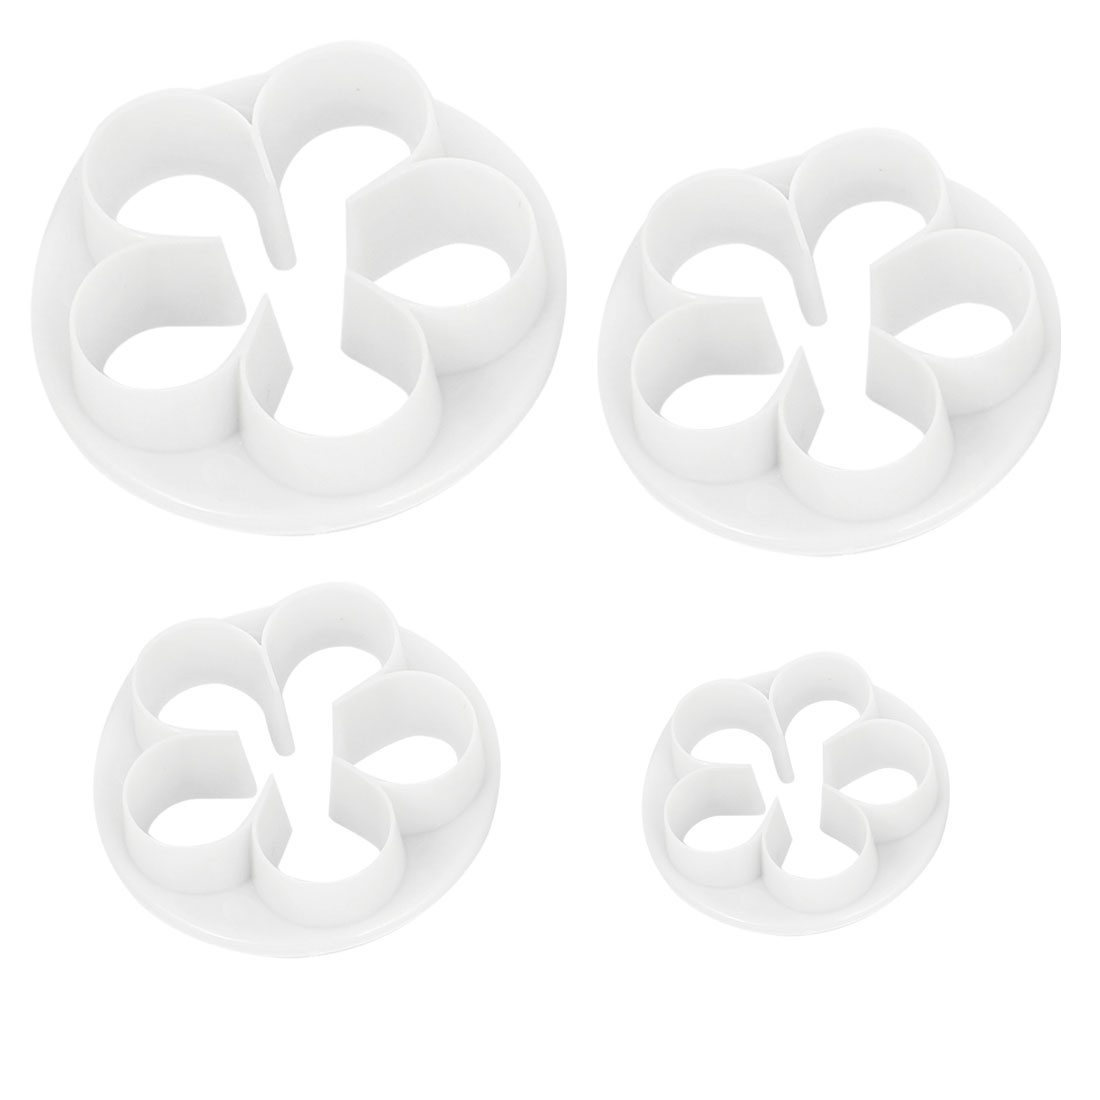 White Pastry Dessert Rose Design Cookie Sugarcraft Cutter Mold 4 in 1